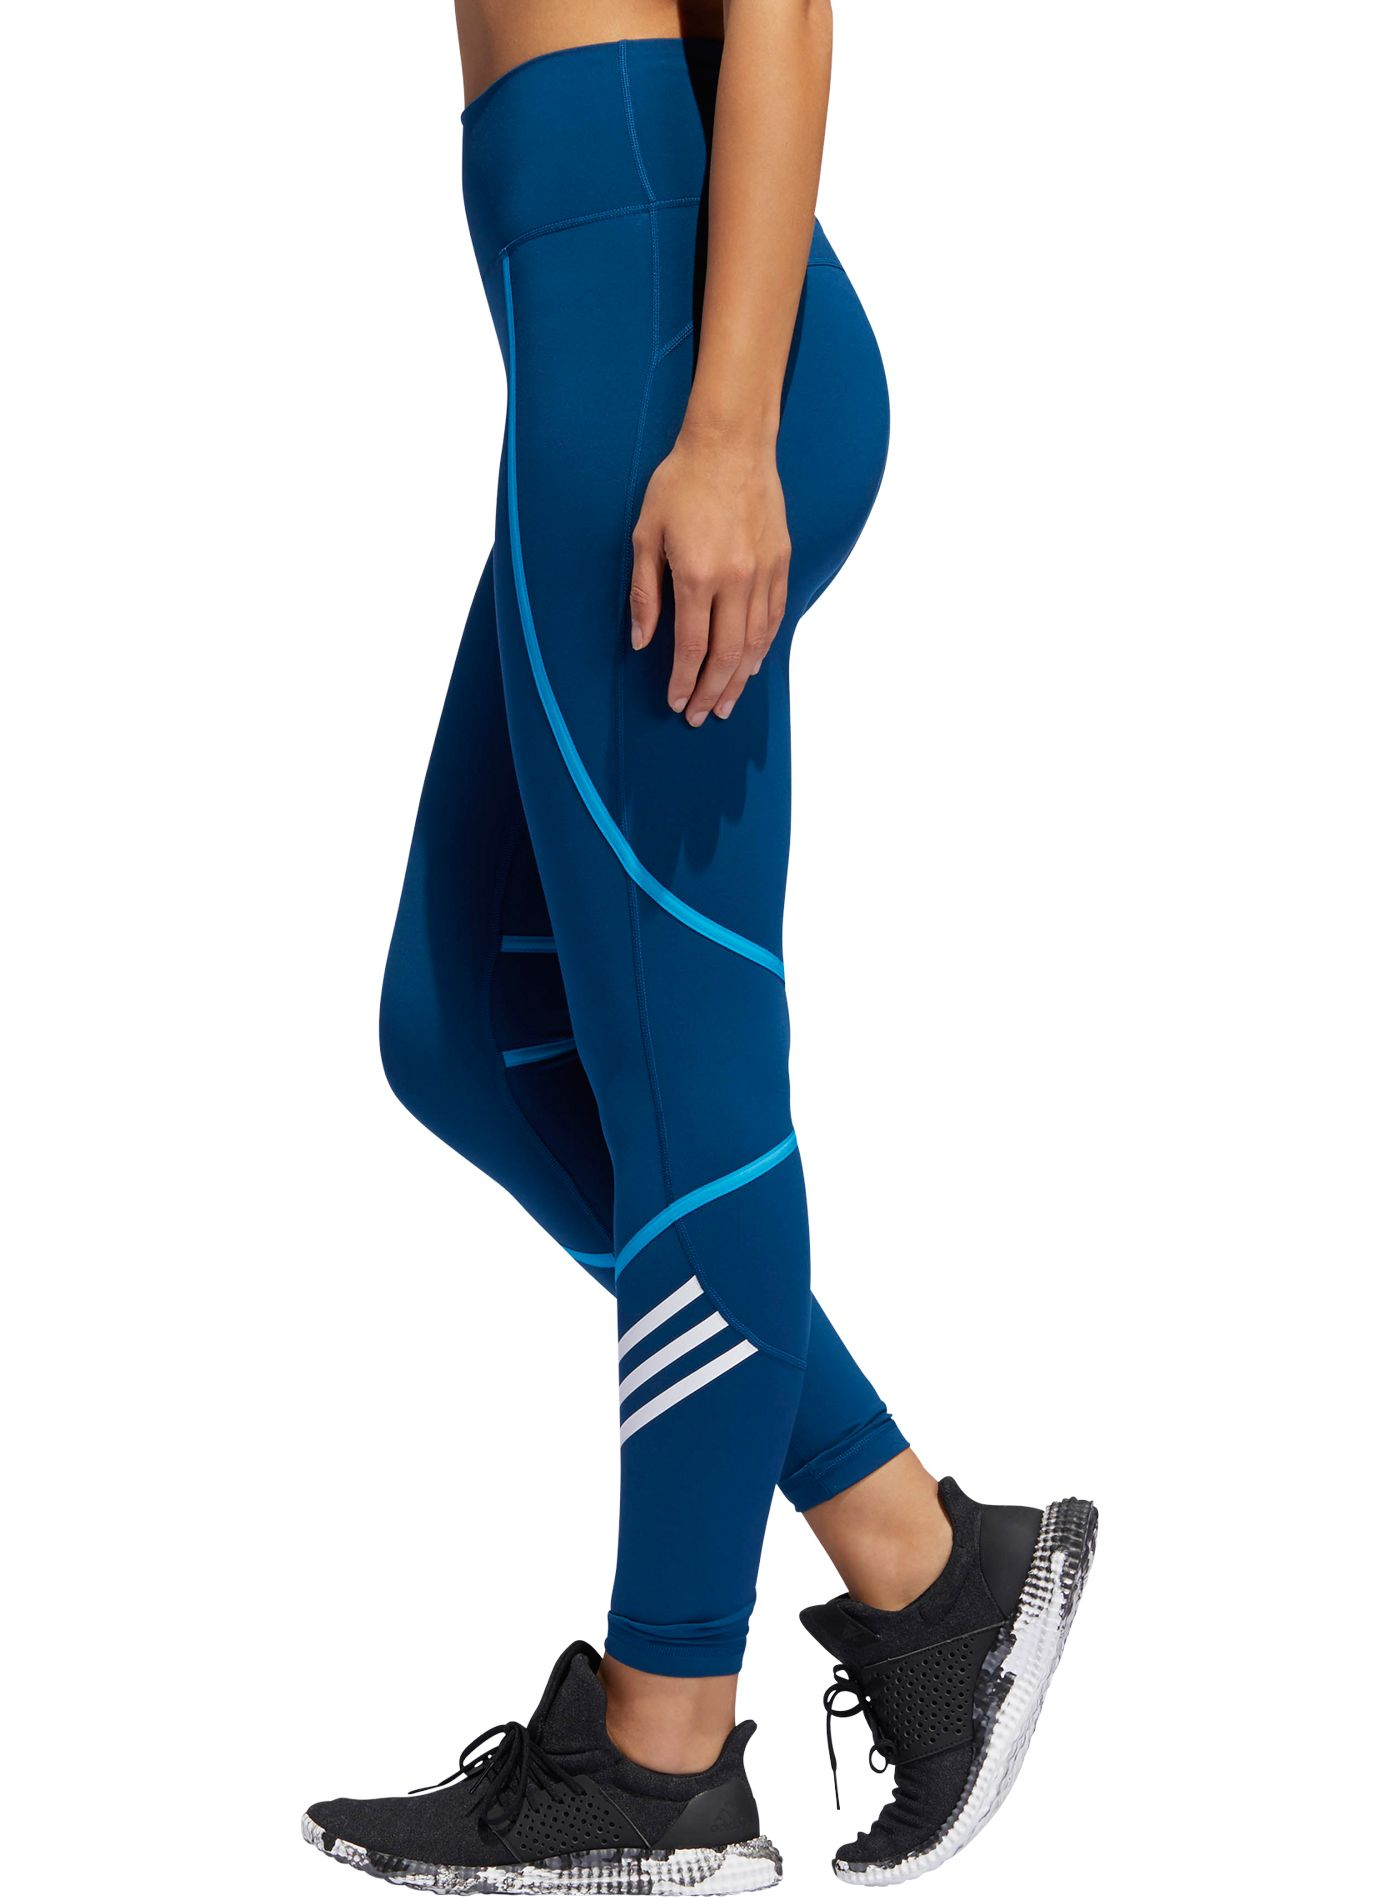 adidas Women's Believe This Elastic Wrap 7/8 Tights